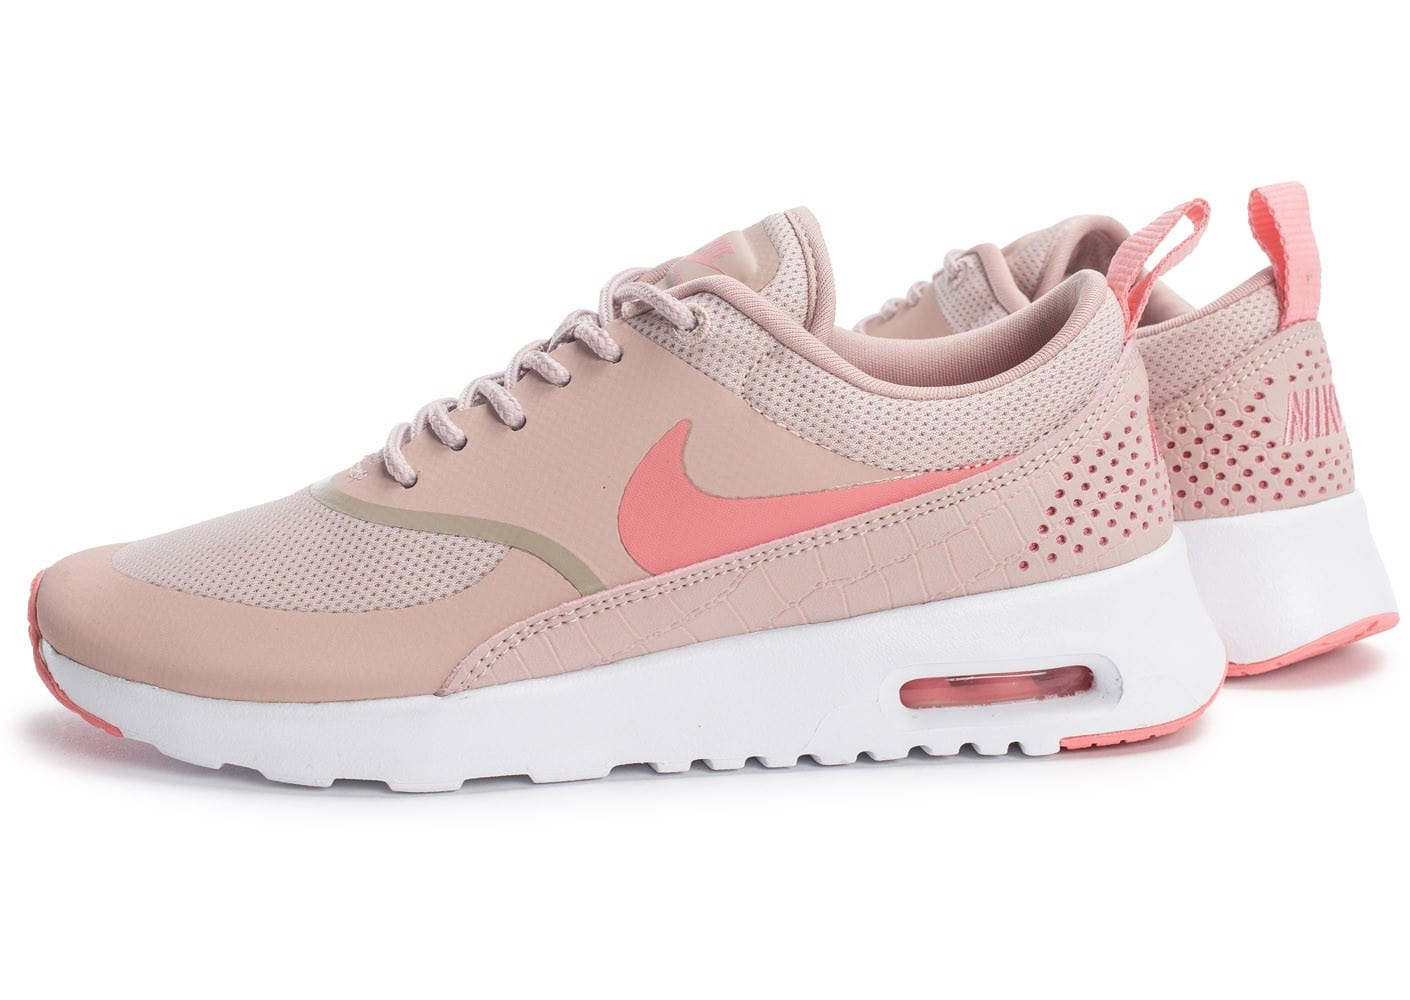 nike air max thea w rose et blanche chaussures black friday chausport. Black Bedroom Furniture Sets. Home Design Ideas